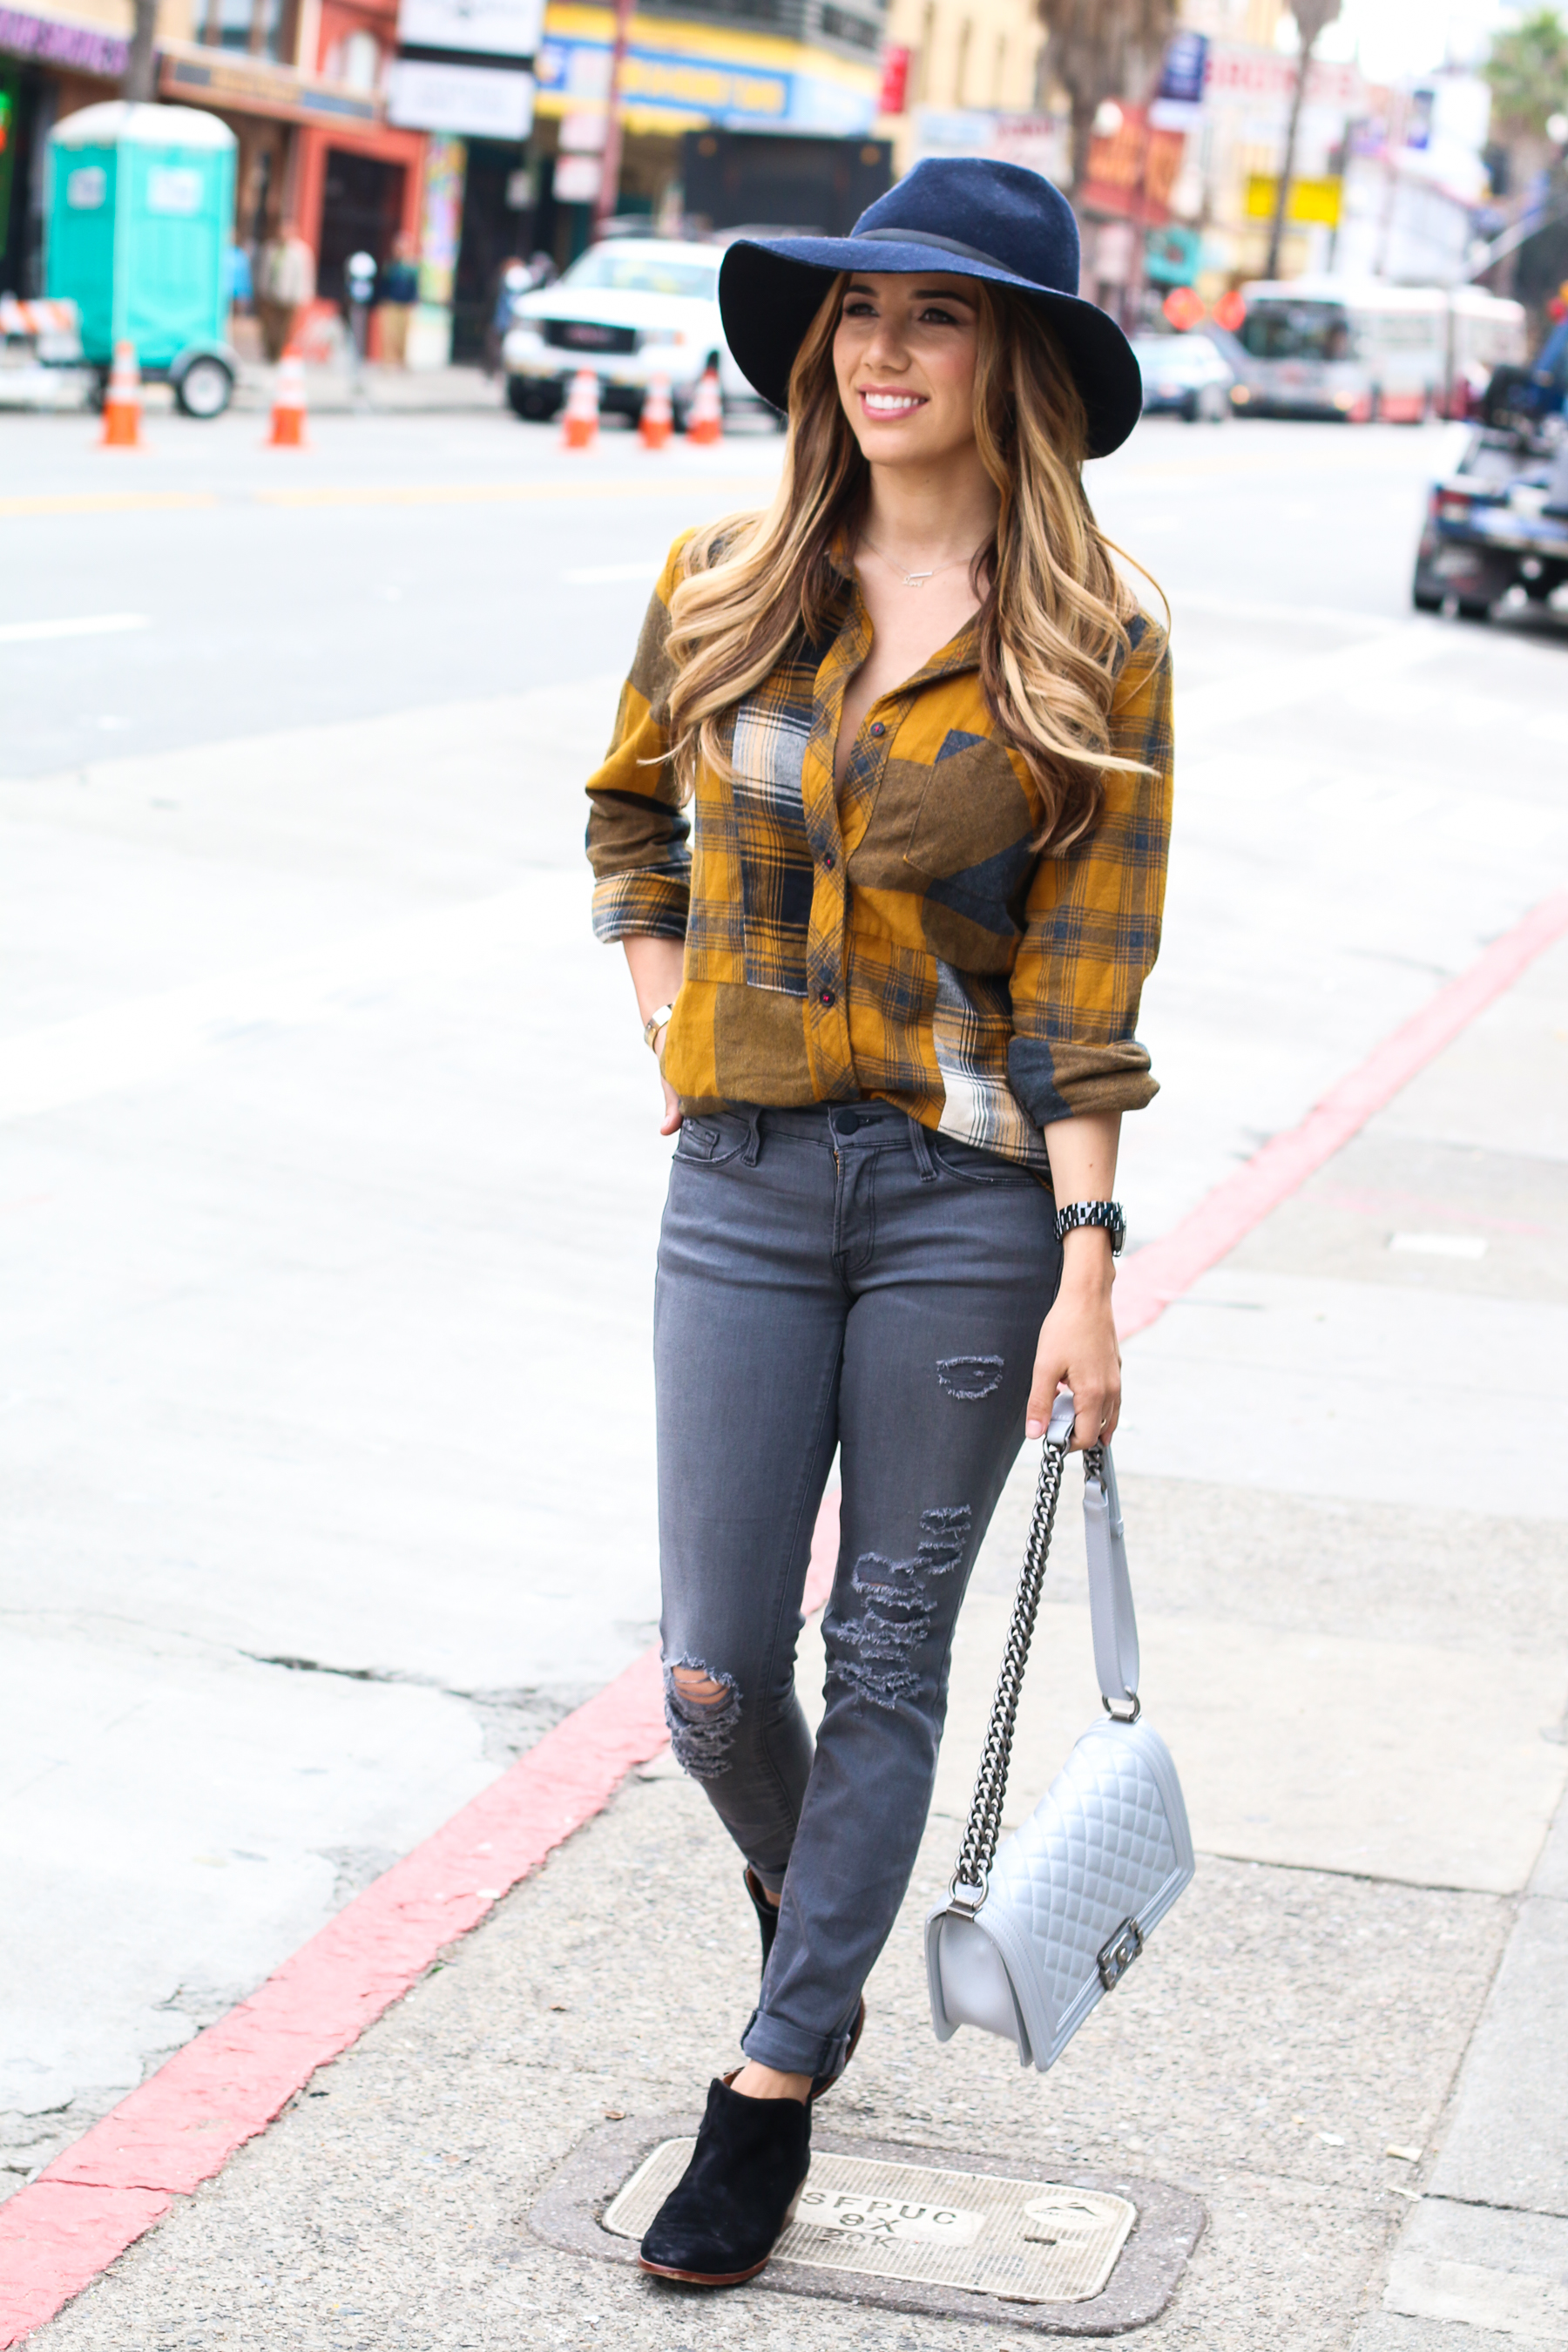 Ariana-Lauren-Fashion-Born-Blogger-Plaid-Shirt-Gray-Jean-Mission-District-San-Francisco-Photography-by-Ryan-Chua-6995